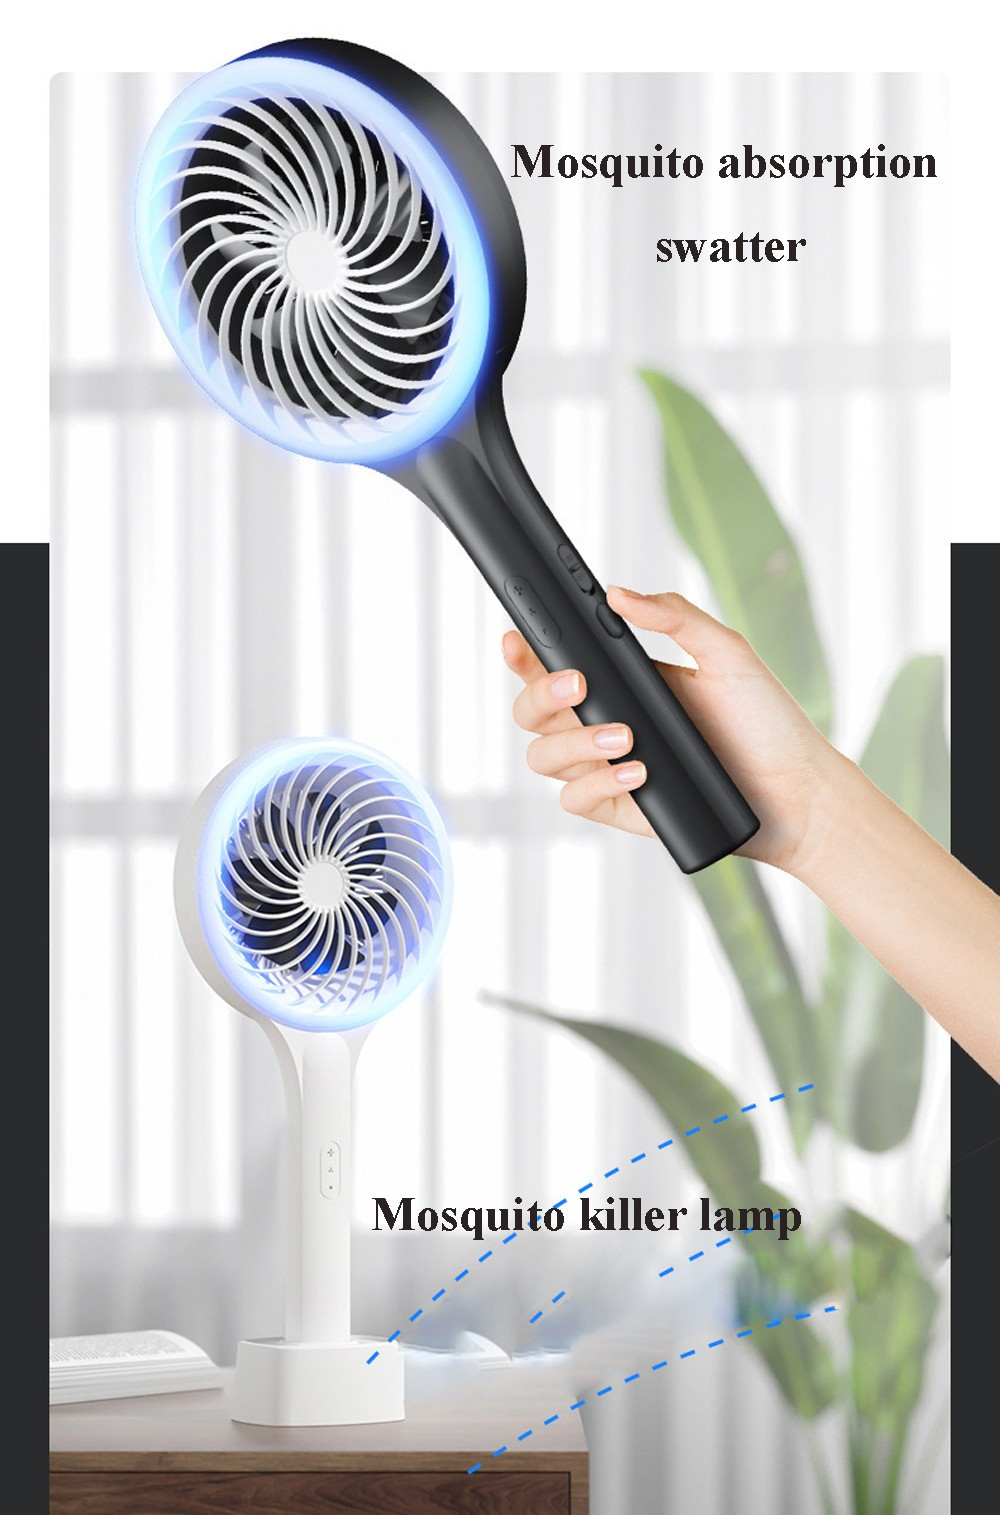 Household Suction Cyclone Mosquito Swatter Vertical Portable Fly Swatter Electric Mosquito Swatter - White